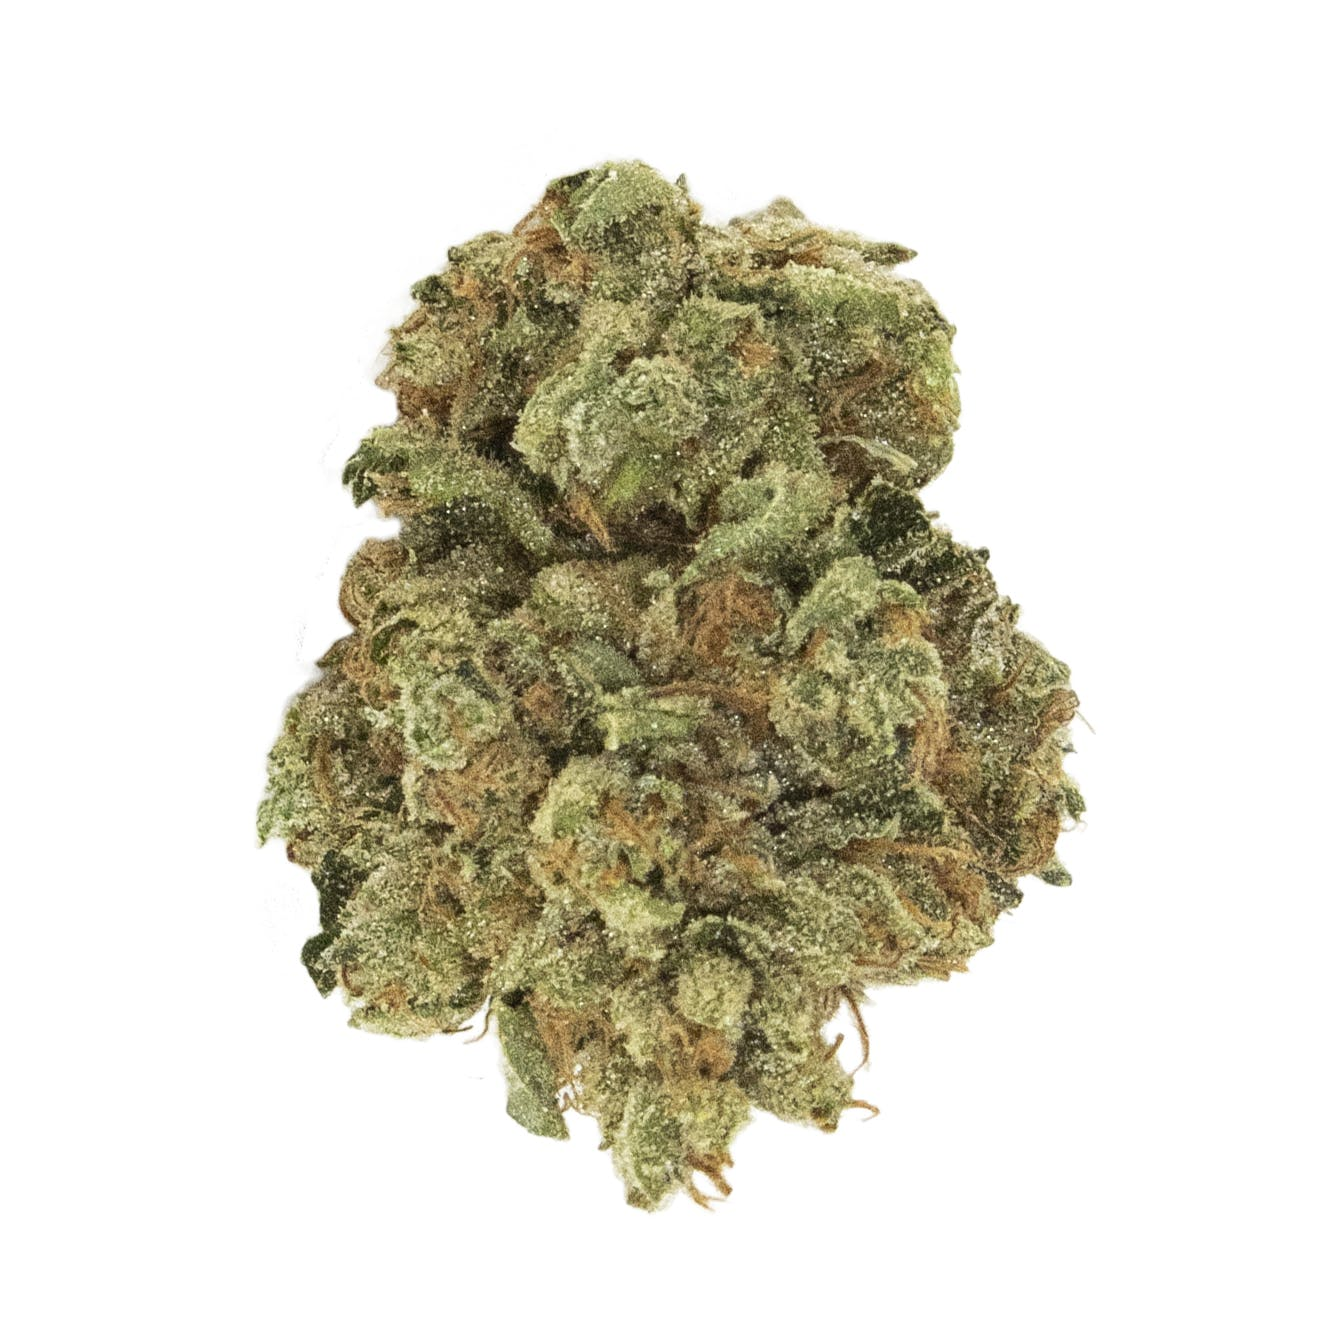 marijuana-dispensaries-3317-keswick-road-hampden-true-kush